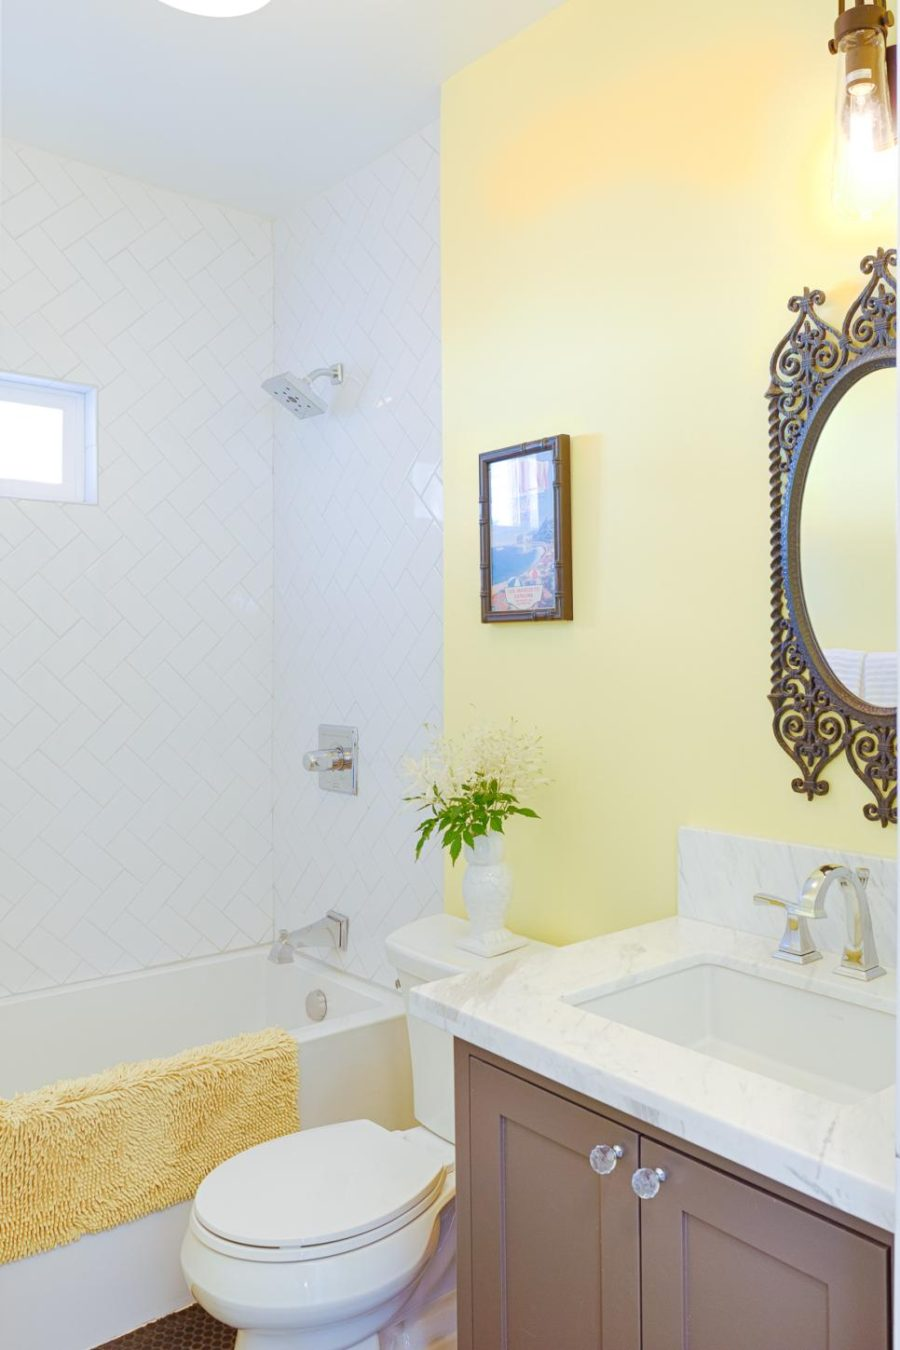 These Small Bathrooms Will Give You Remodeling Ideas on Nice Bathroom Designs For Small Spaces  id=14753